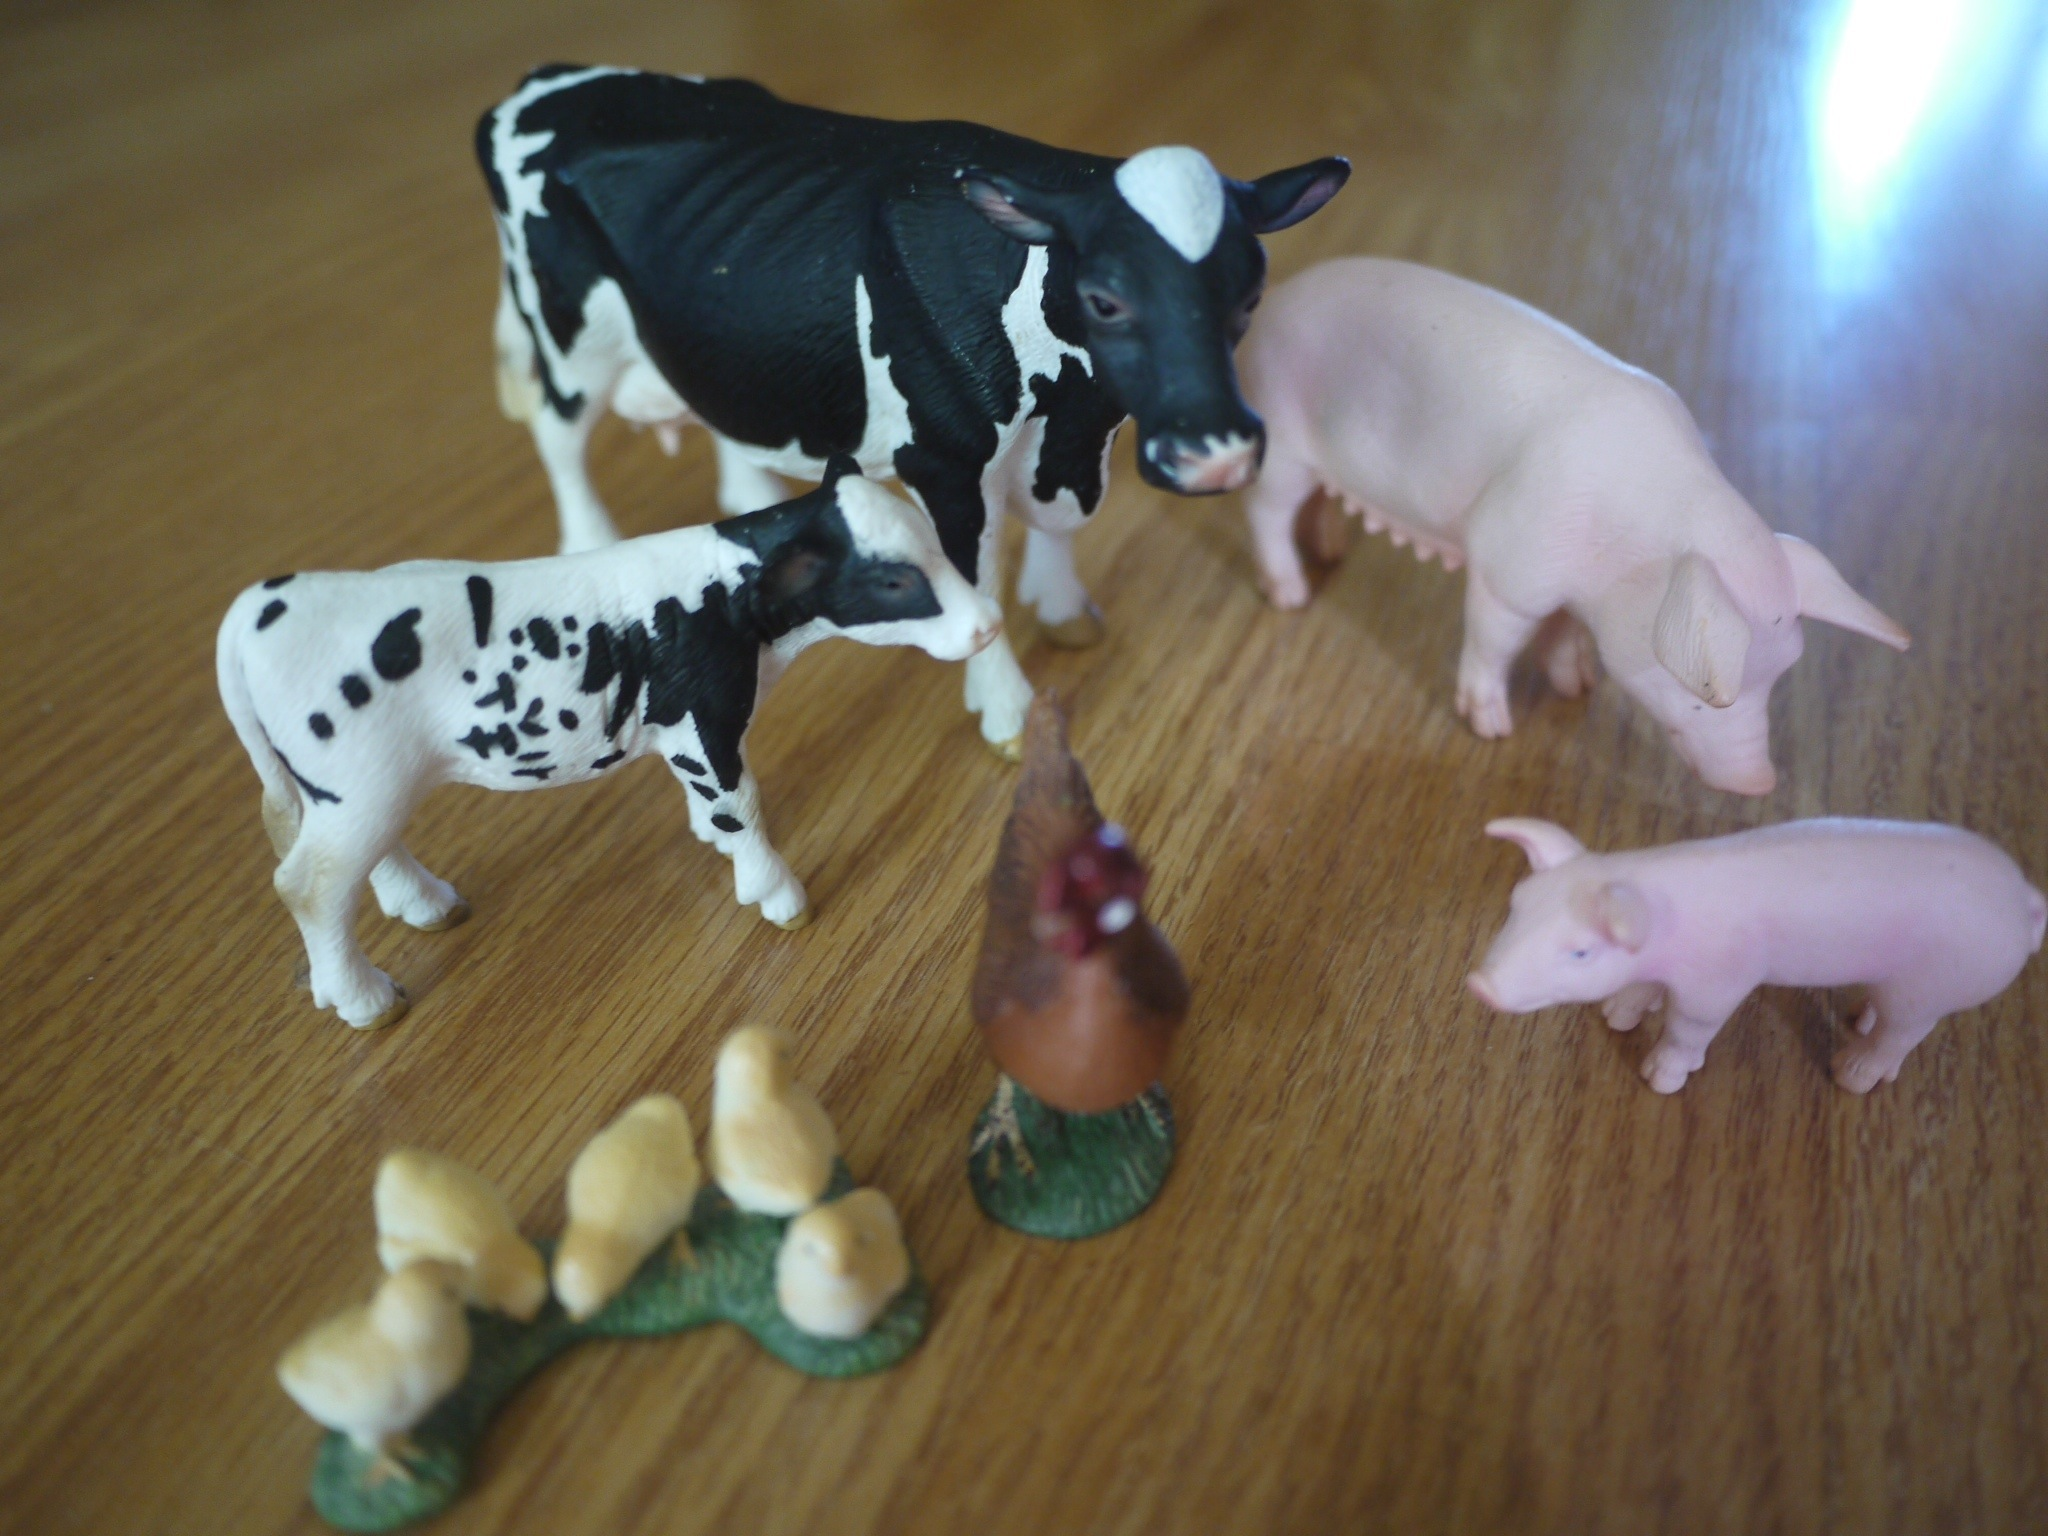 Toddler Matching Activities Farm Animal Mother And Baby Our - Mother takes amazing pictures ever children animals farm